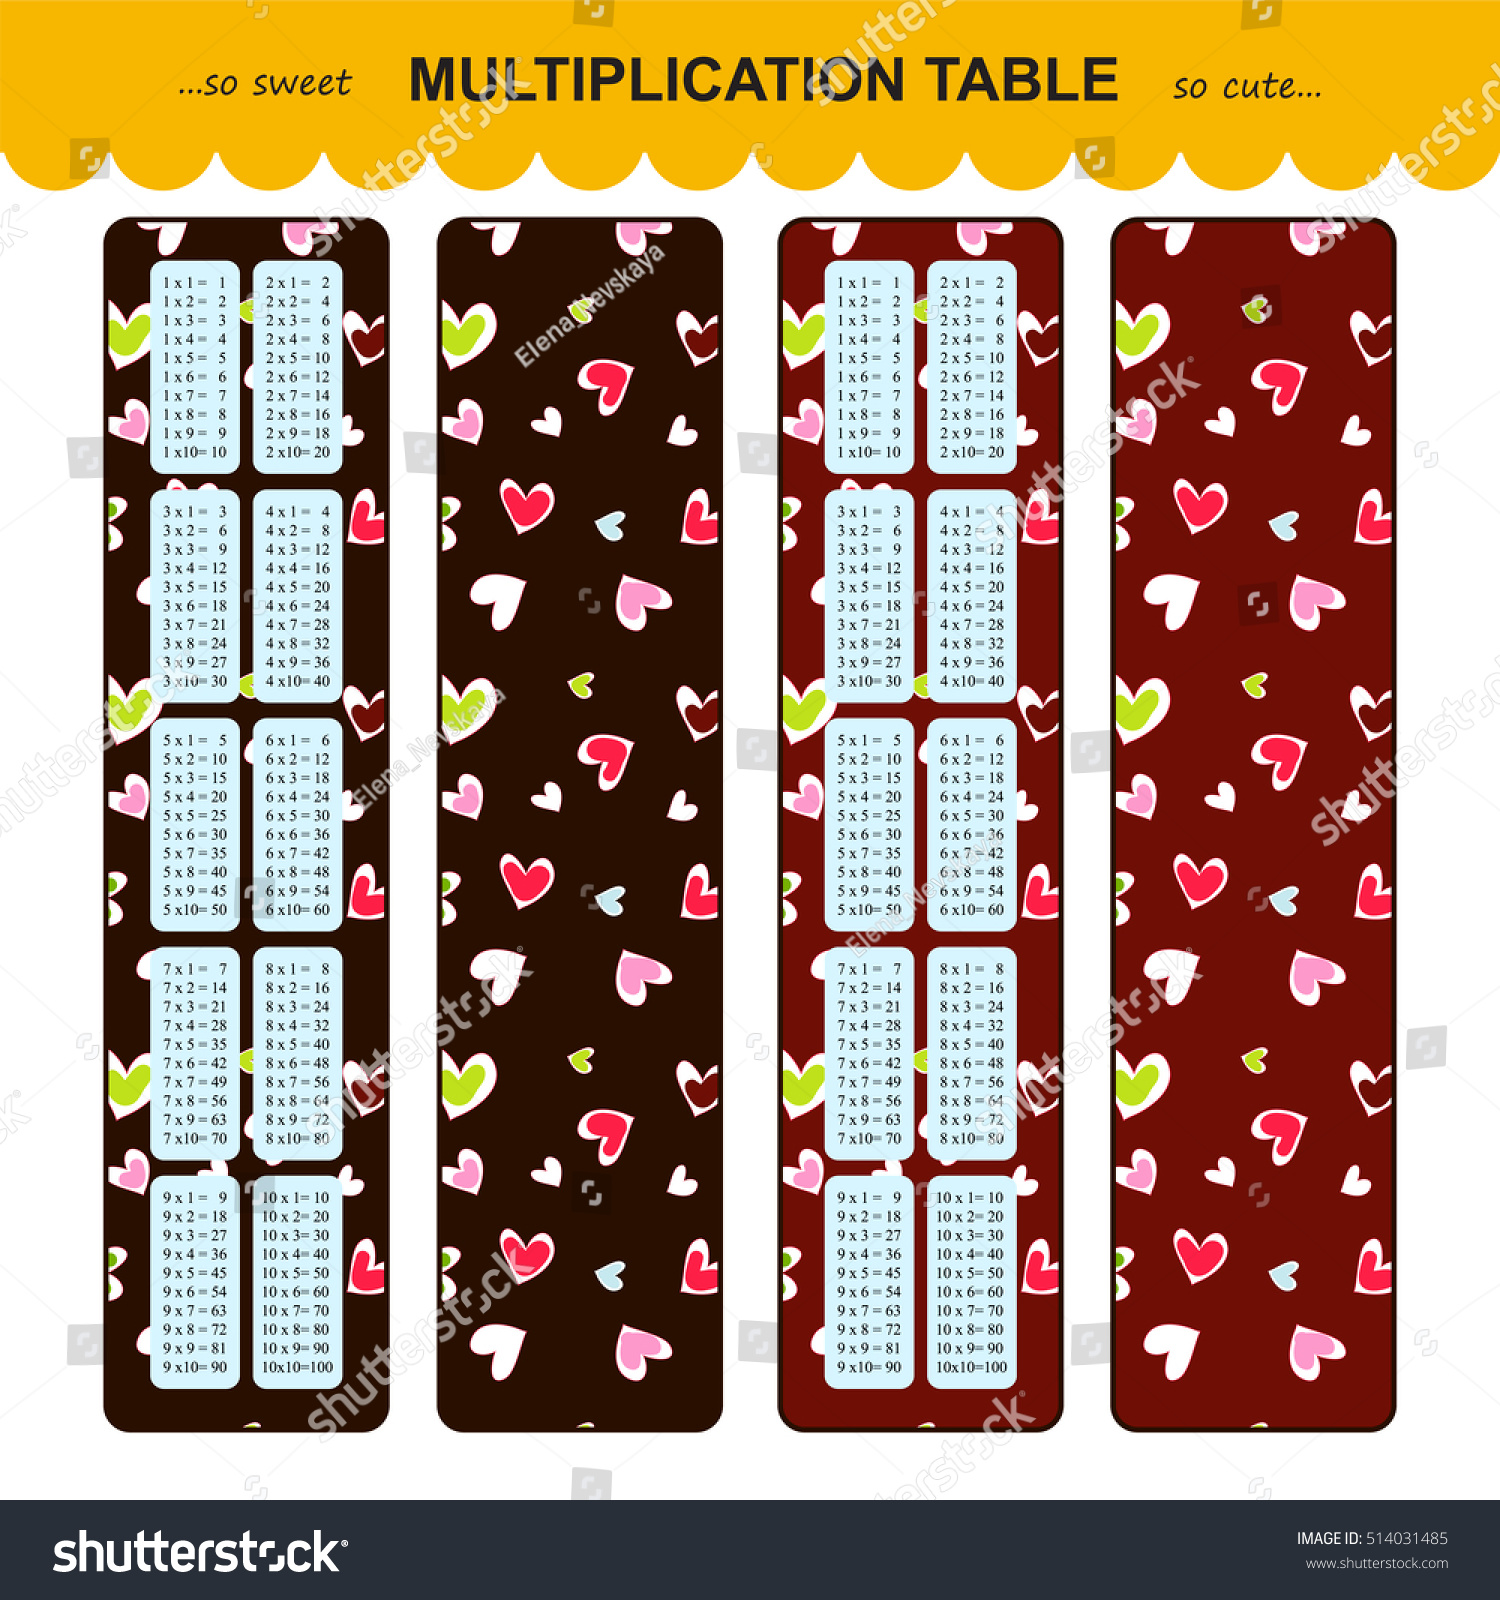 Vector multiplication table printable bookmarks stickers stock vector multiplication table printable bookmarks or stickers with multiple tables cute background with hearts gamestrikefo Image collections